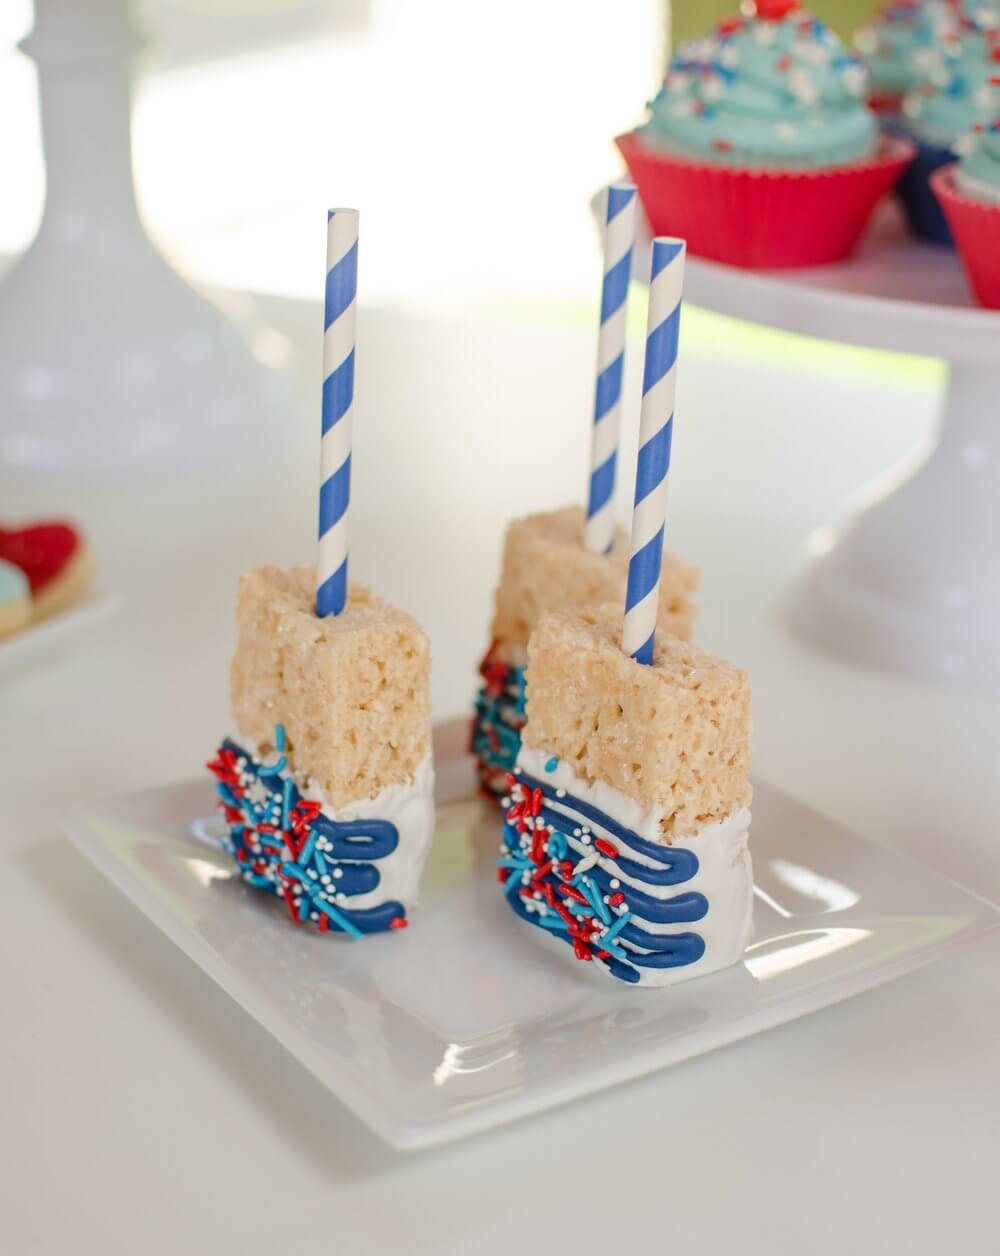 Rice Crispy type treats covered in icing and sprinkles, and skewered with a fun barbershop straw.